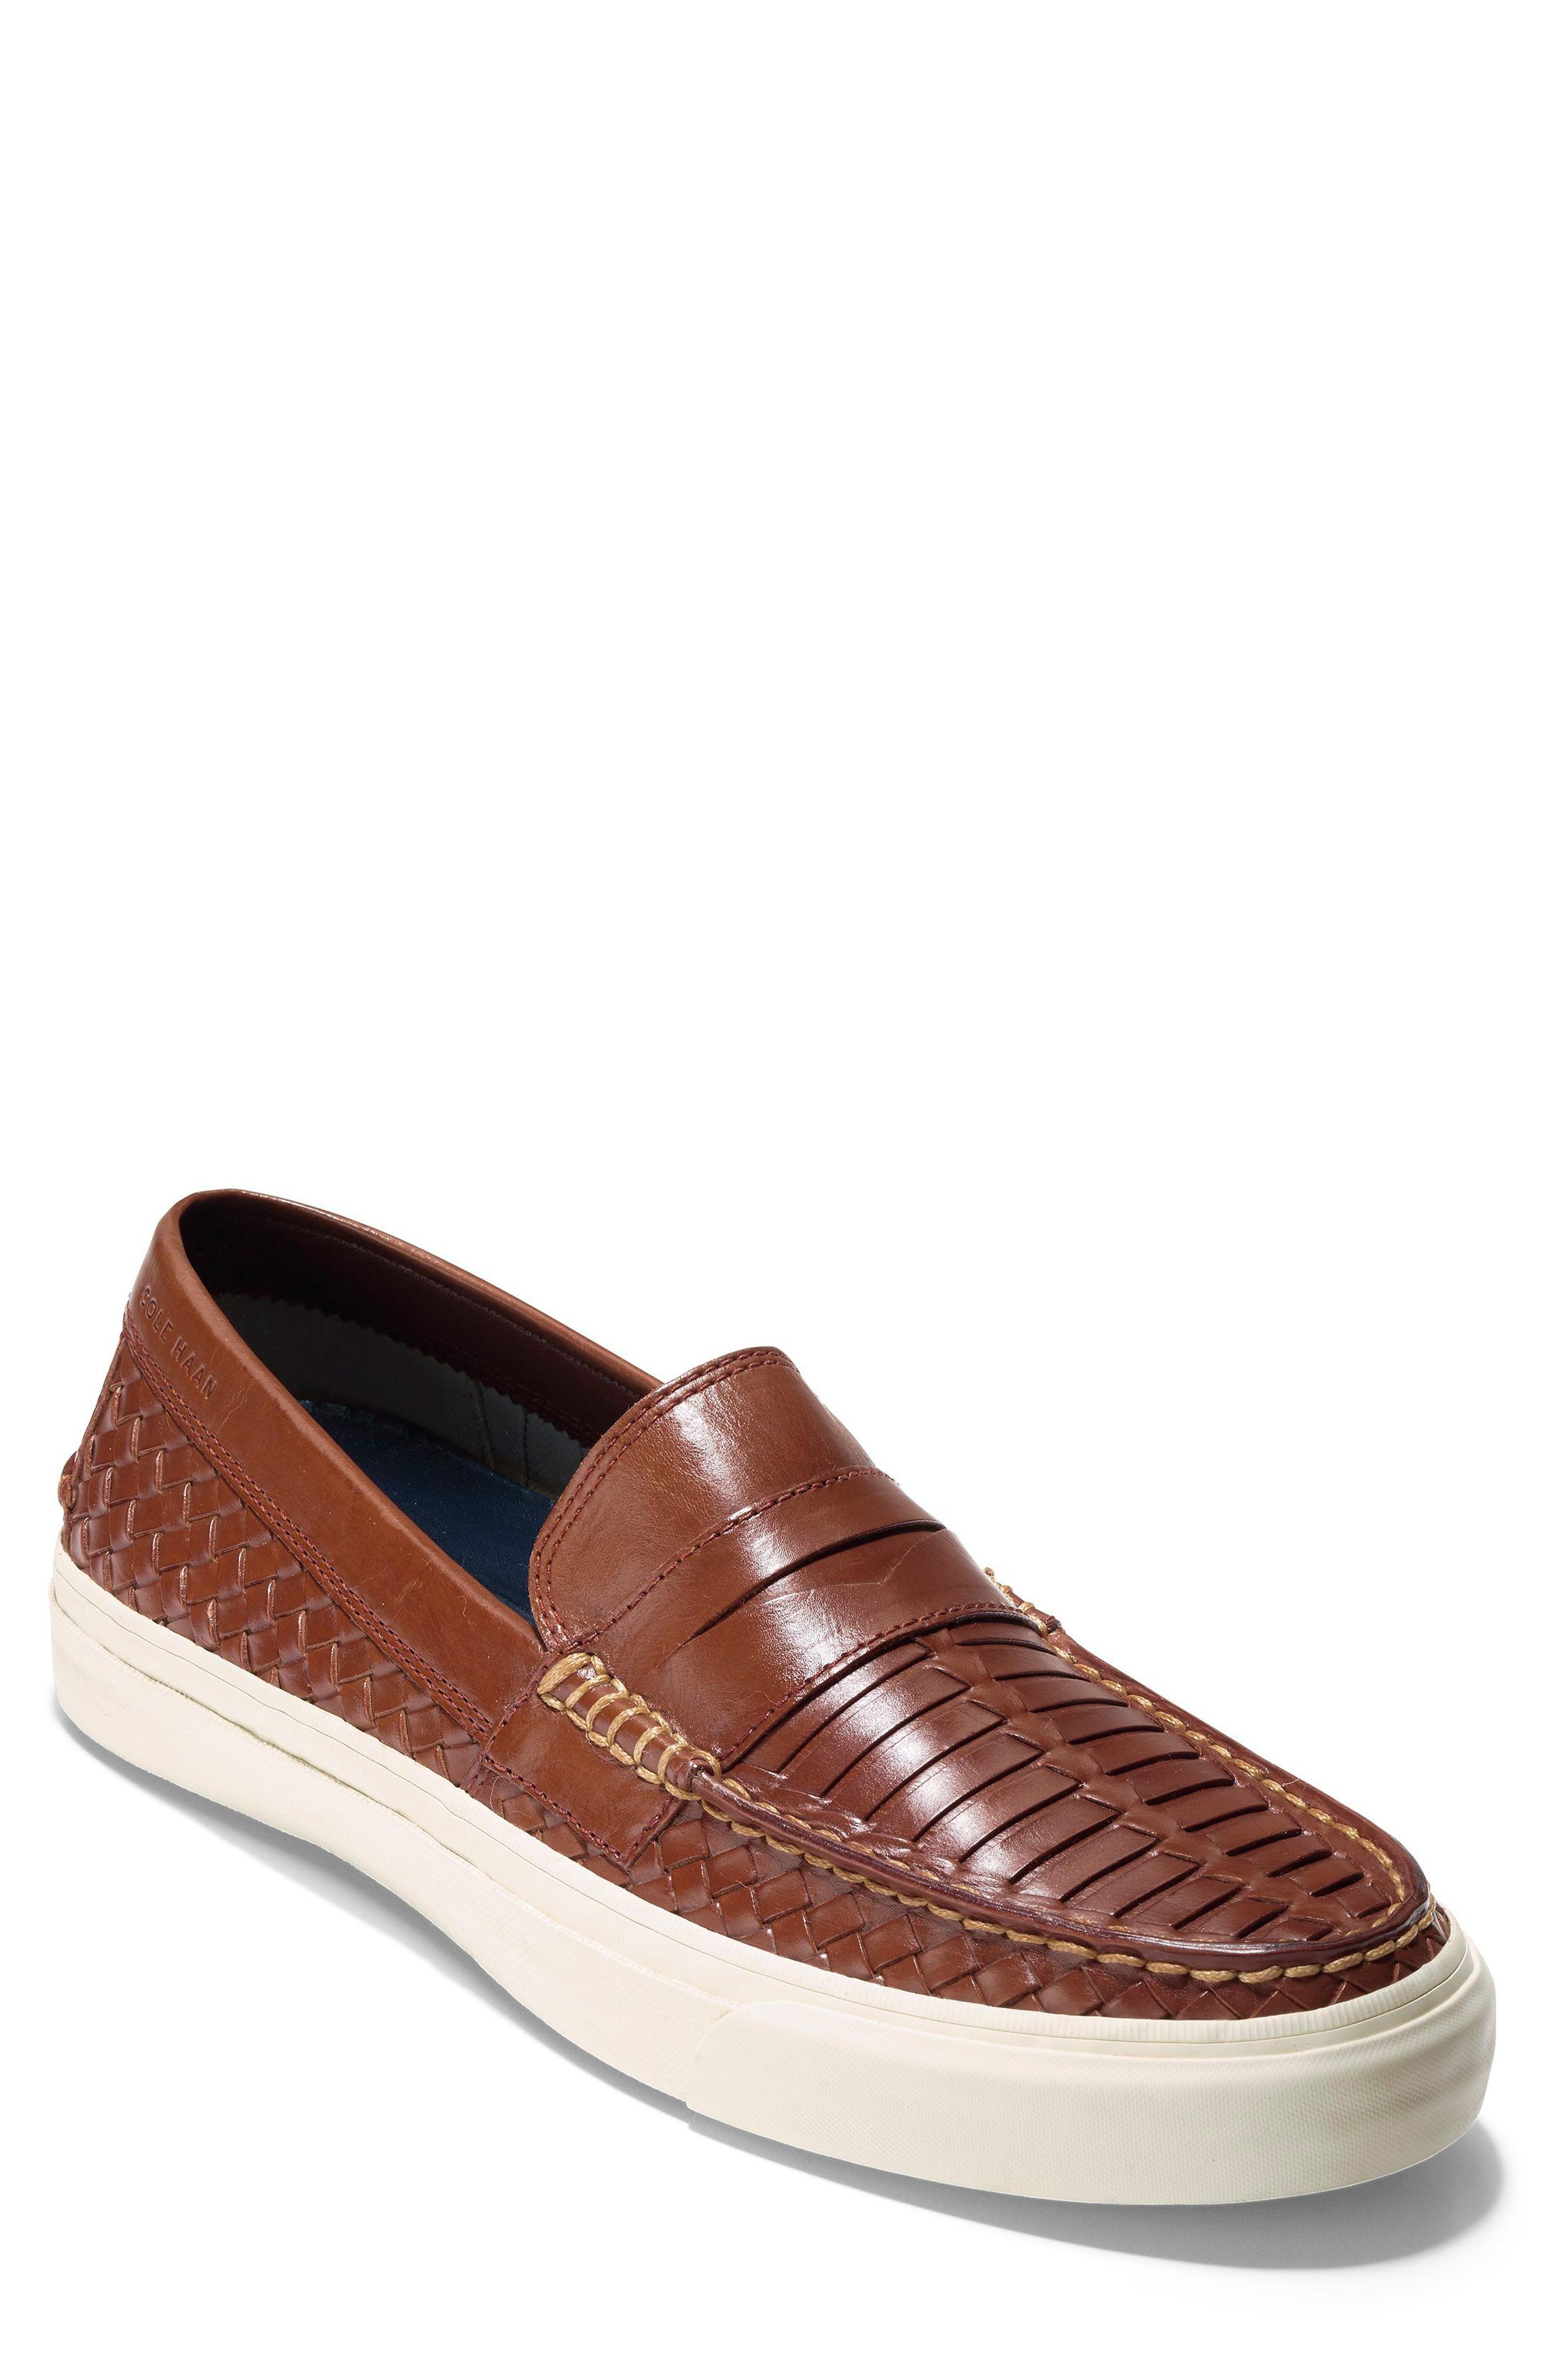 c7f6bacba9a2 Cole Haan Pinch Weekender Lx Huarache Loafer In Woodbury Woven Burnish